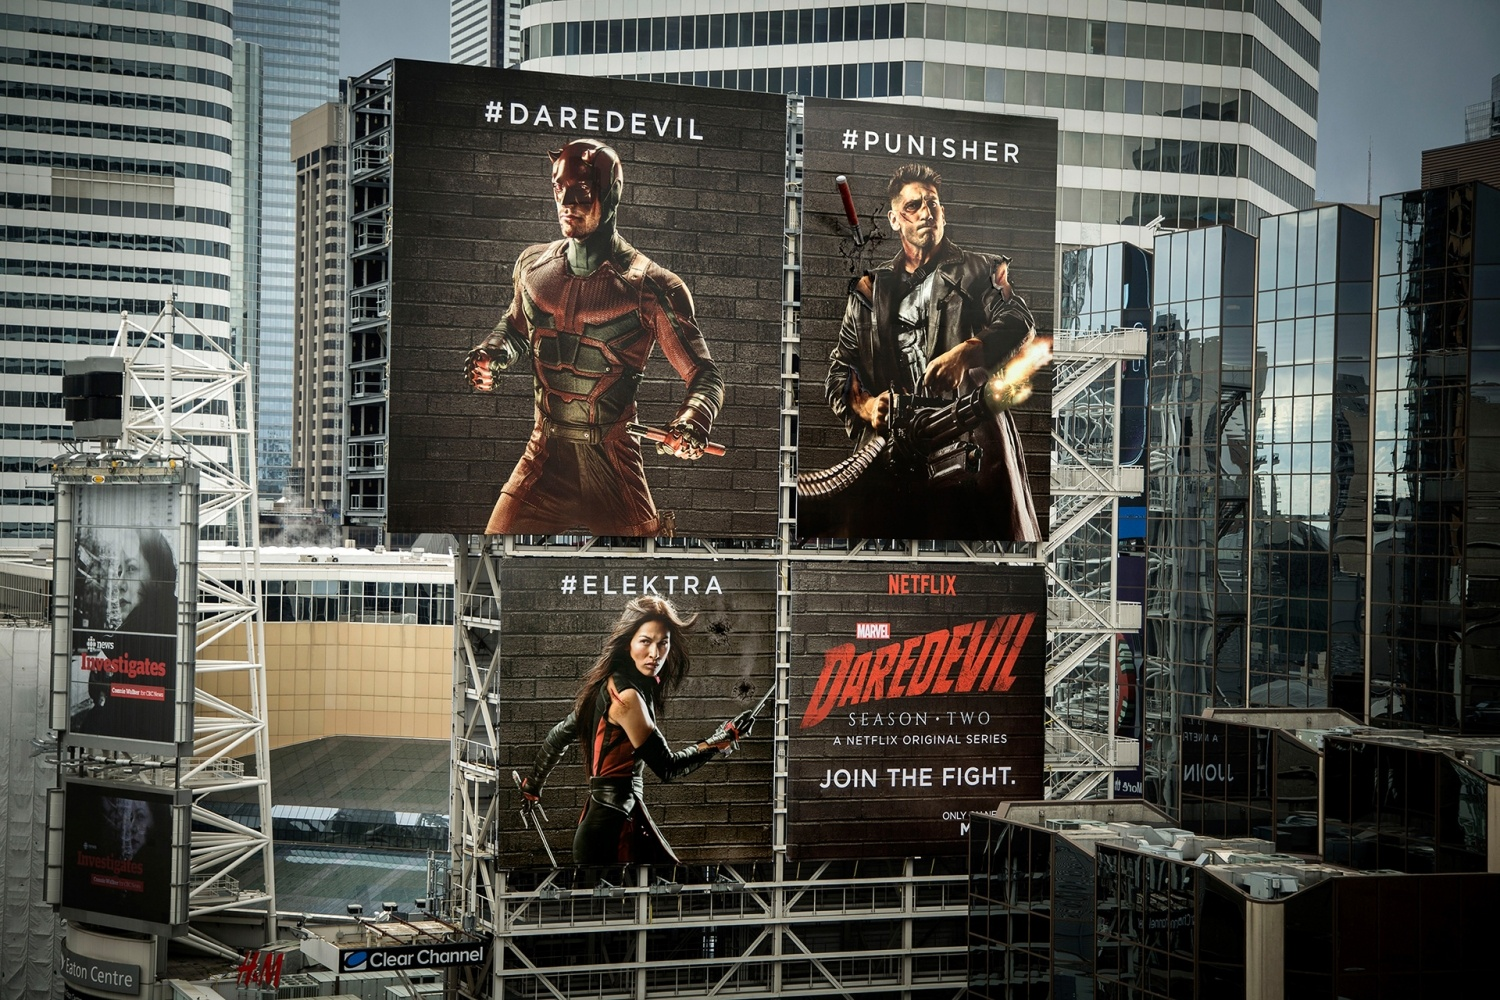 daredevil-billboard.jpg